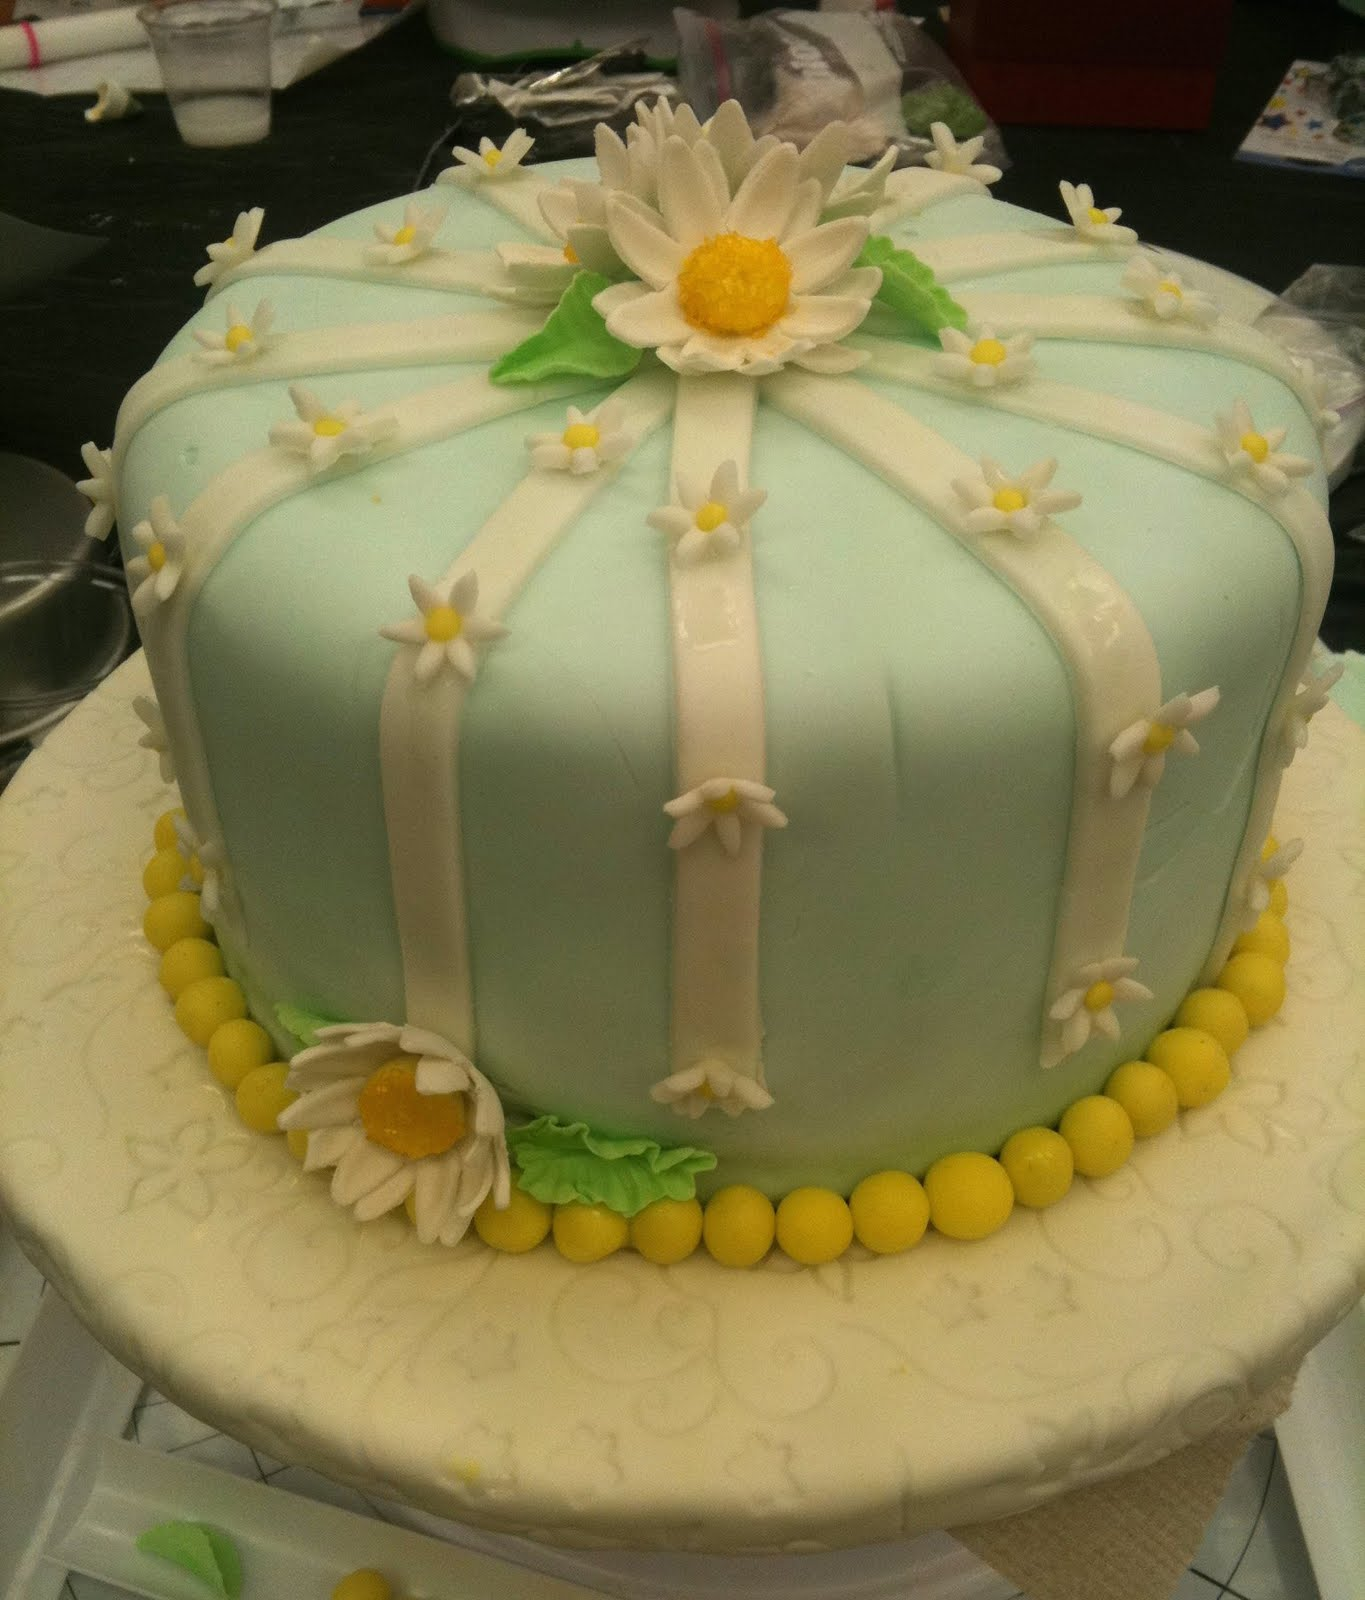 Cake Decorating By Sonia January 2011 Gum Paste